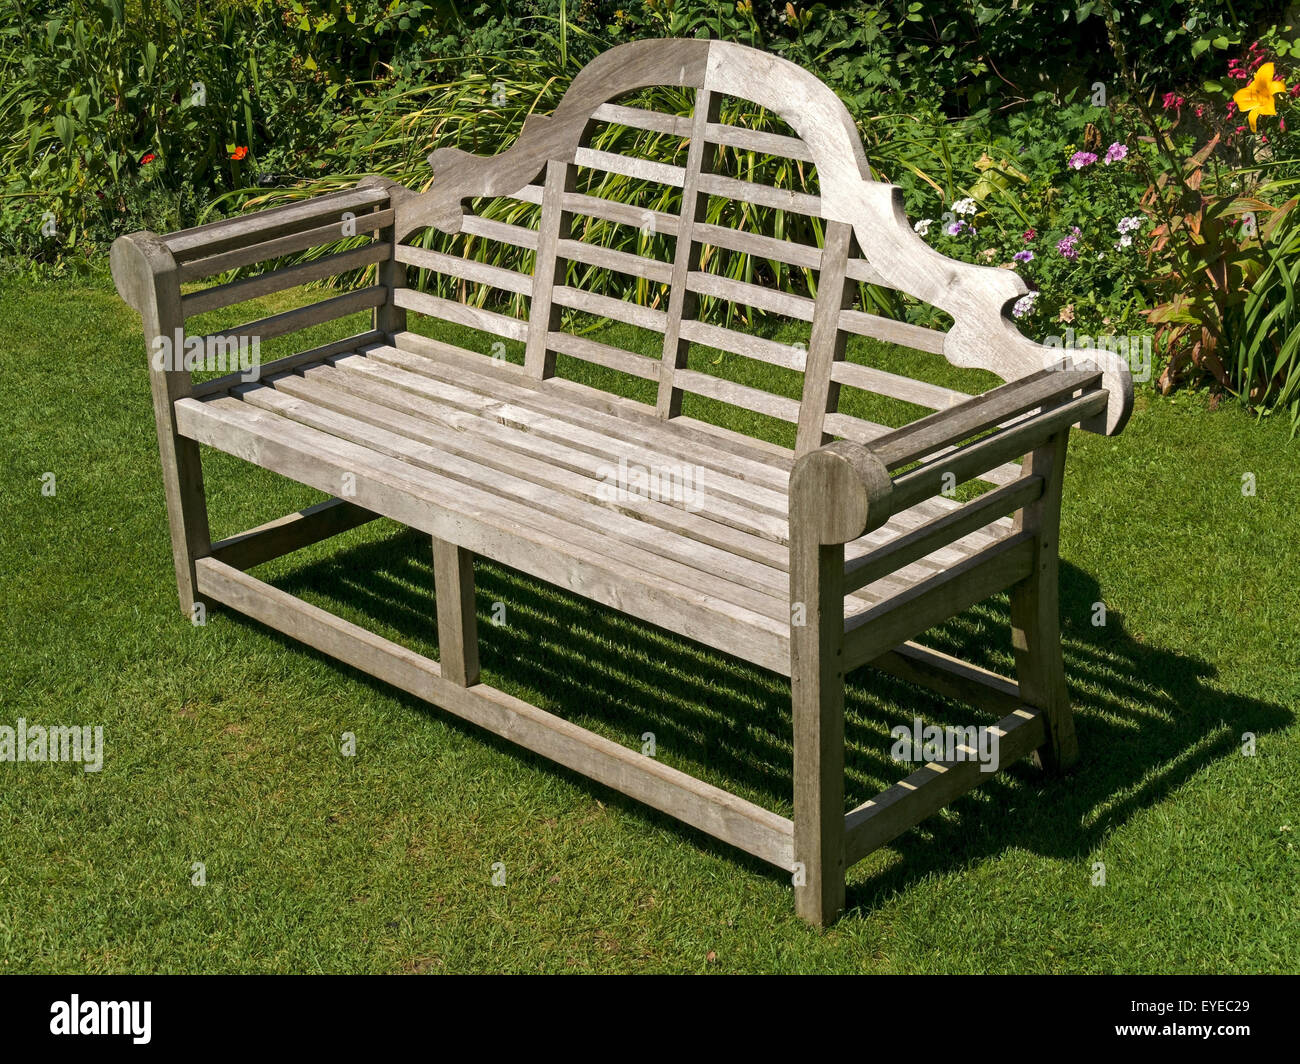 Beau Ornate Wooden Garden Bench Seat On Green Lawn, Barnsdale Gardens, Rutland,  England,